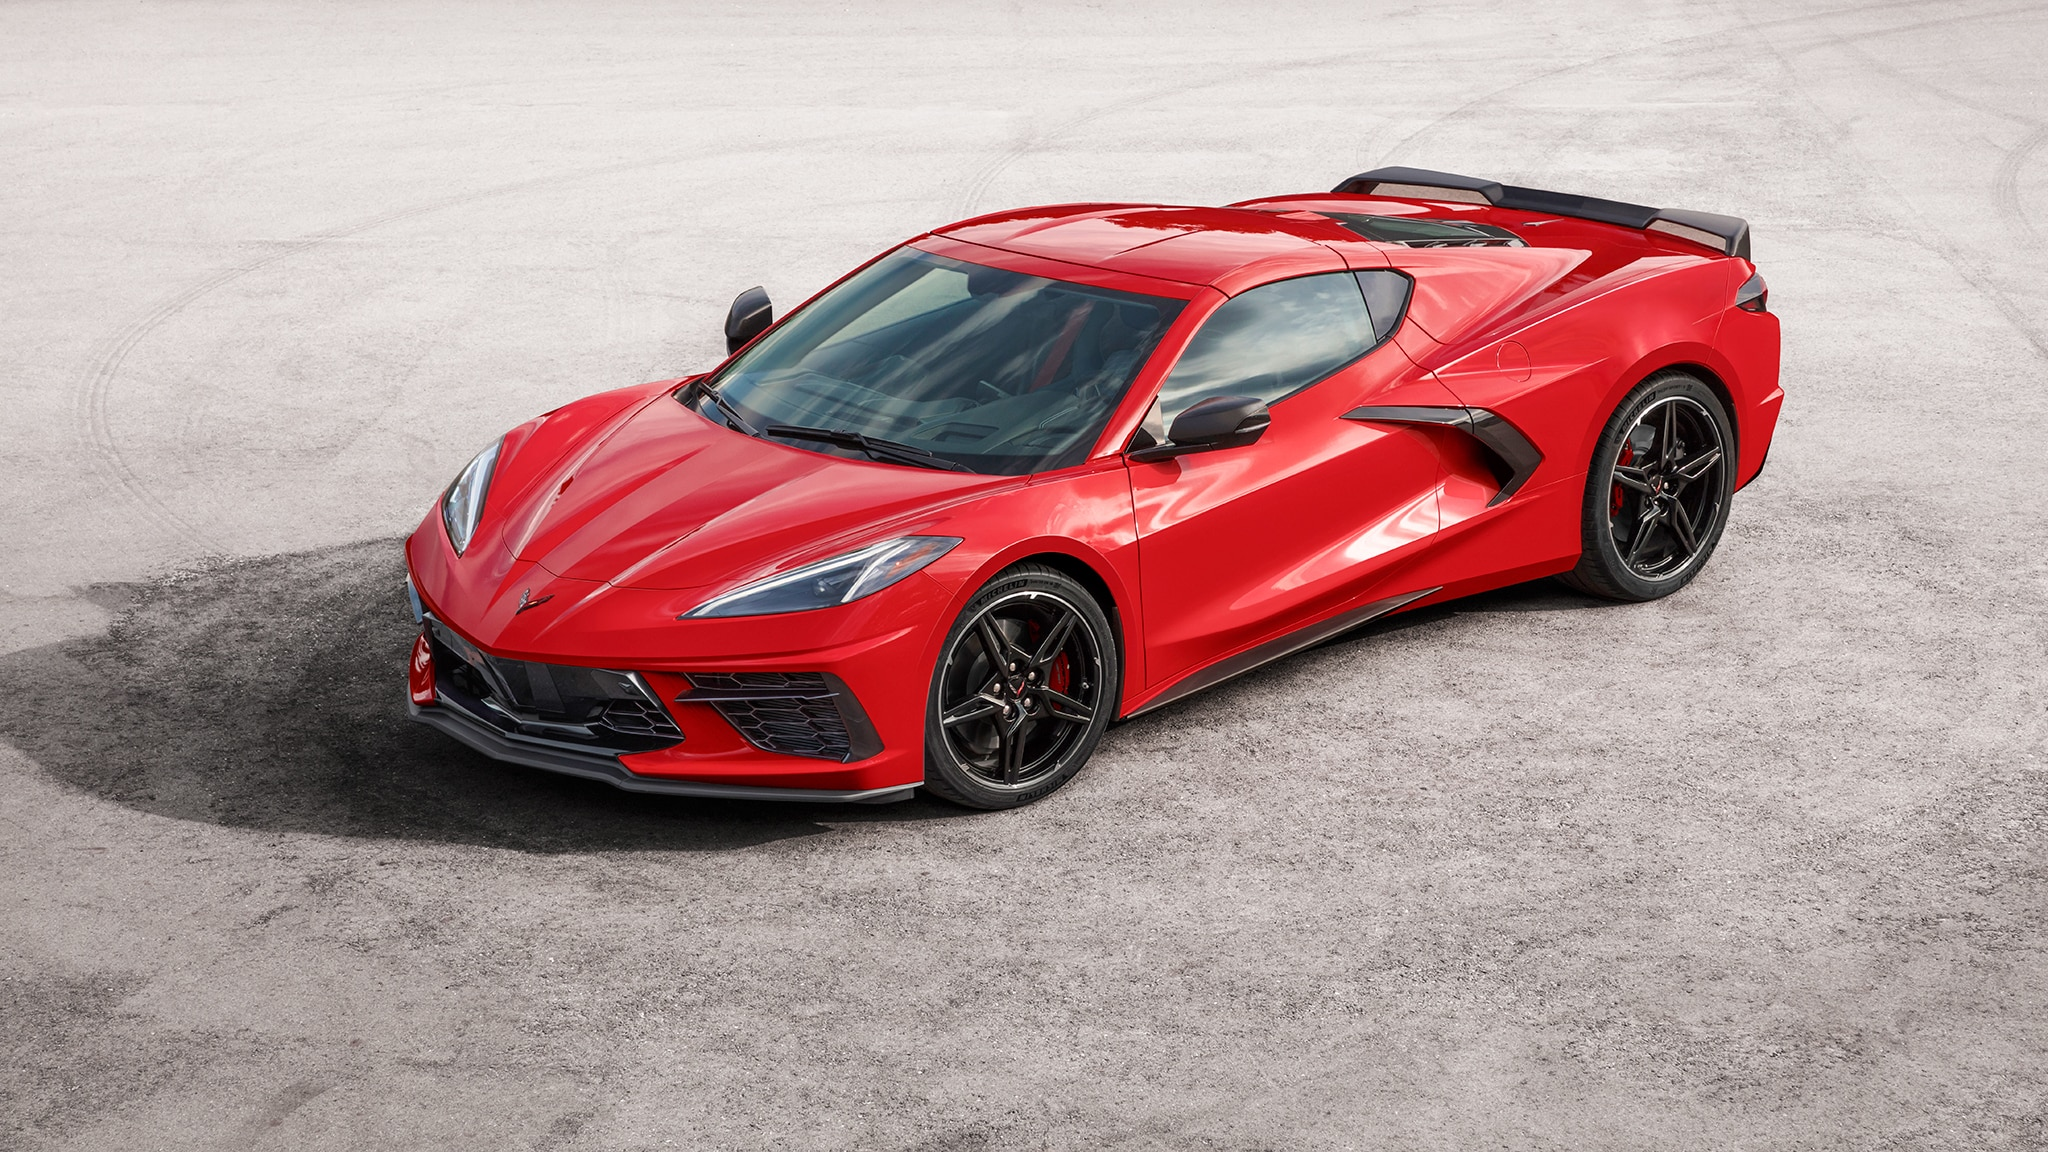 2020 Chevy Corvette C8: Hot Takes, Live from the Reveal ...